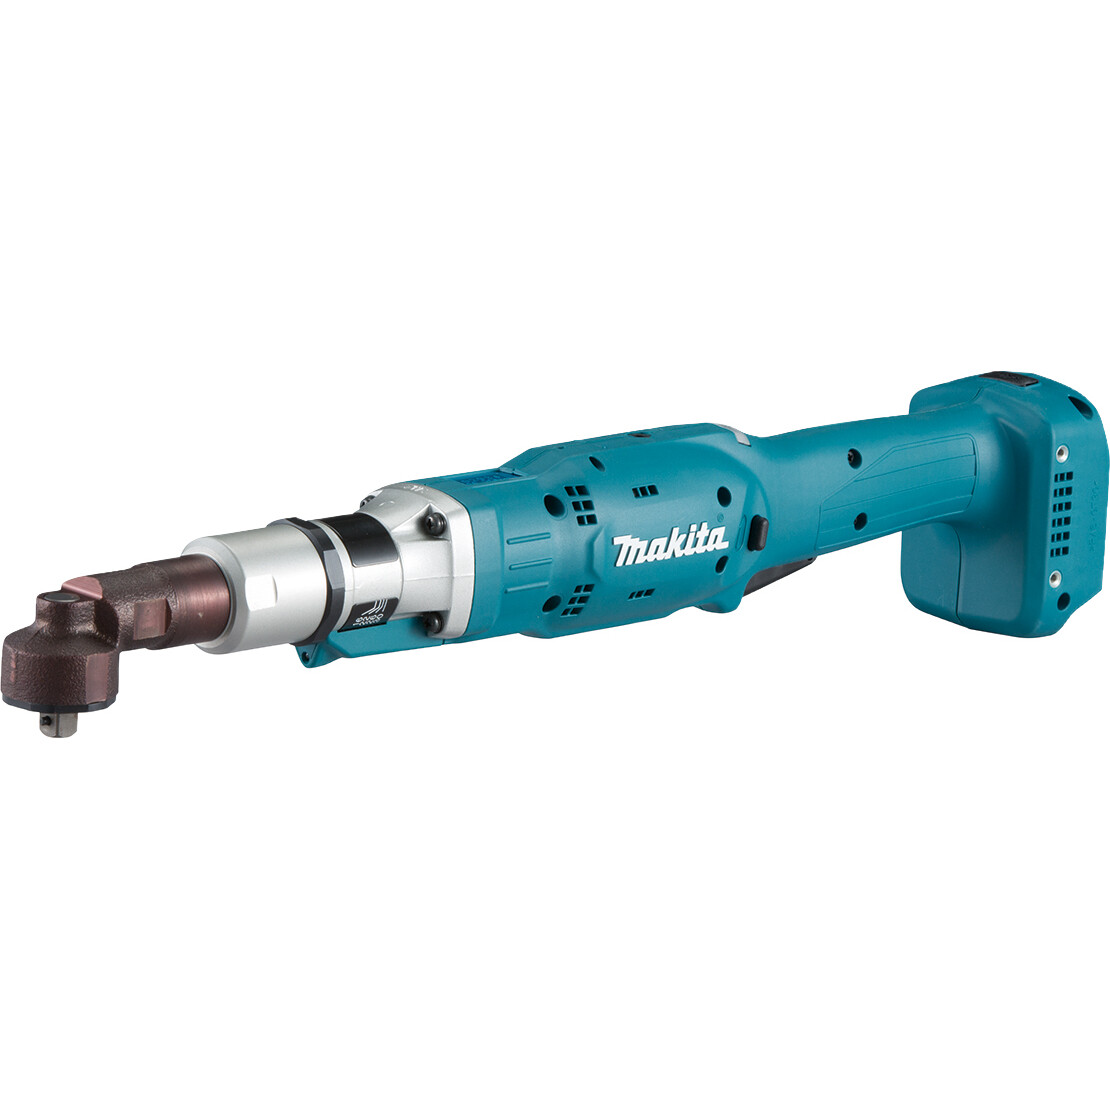 Makita DFL302FZ Body Only 14.4V Brushless Angle Screwdriver LXT